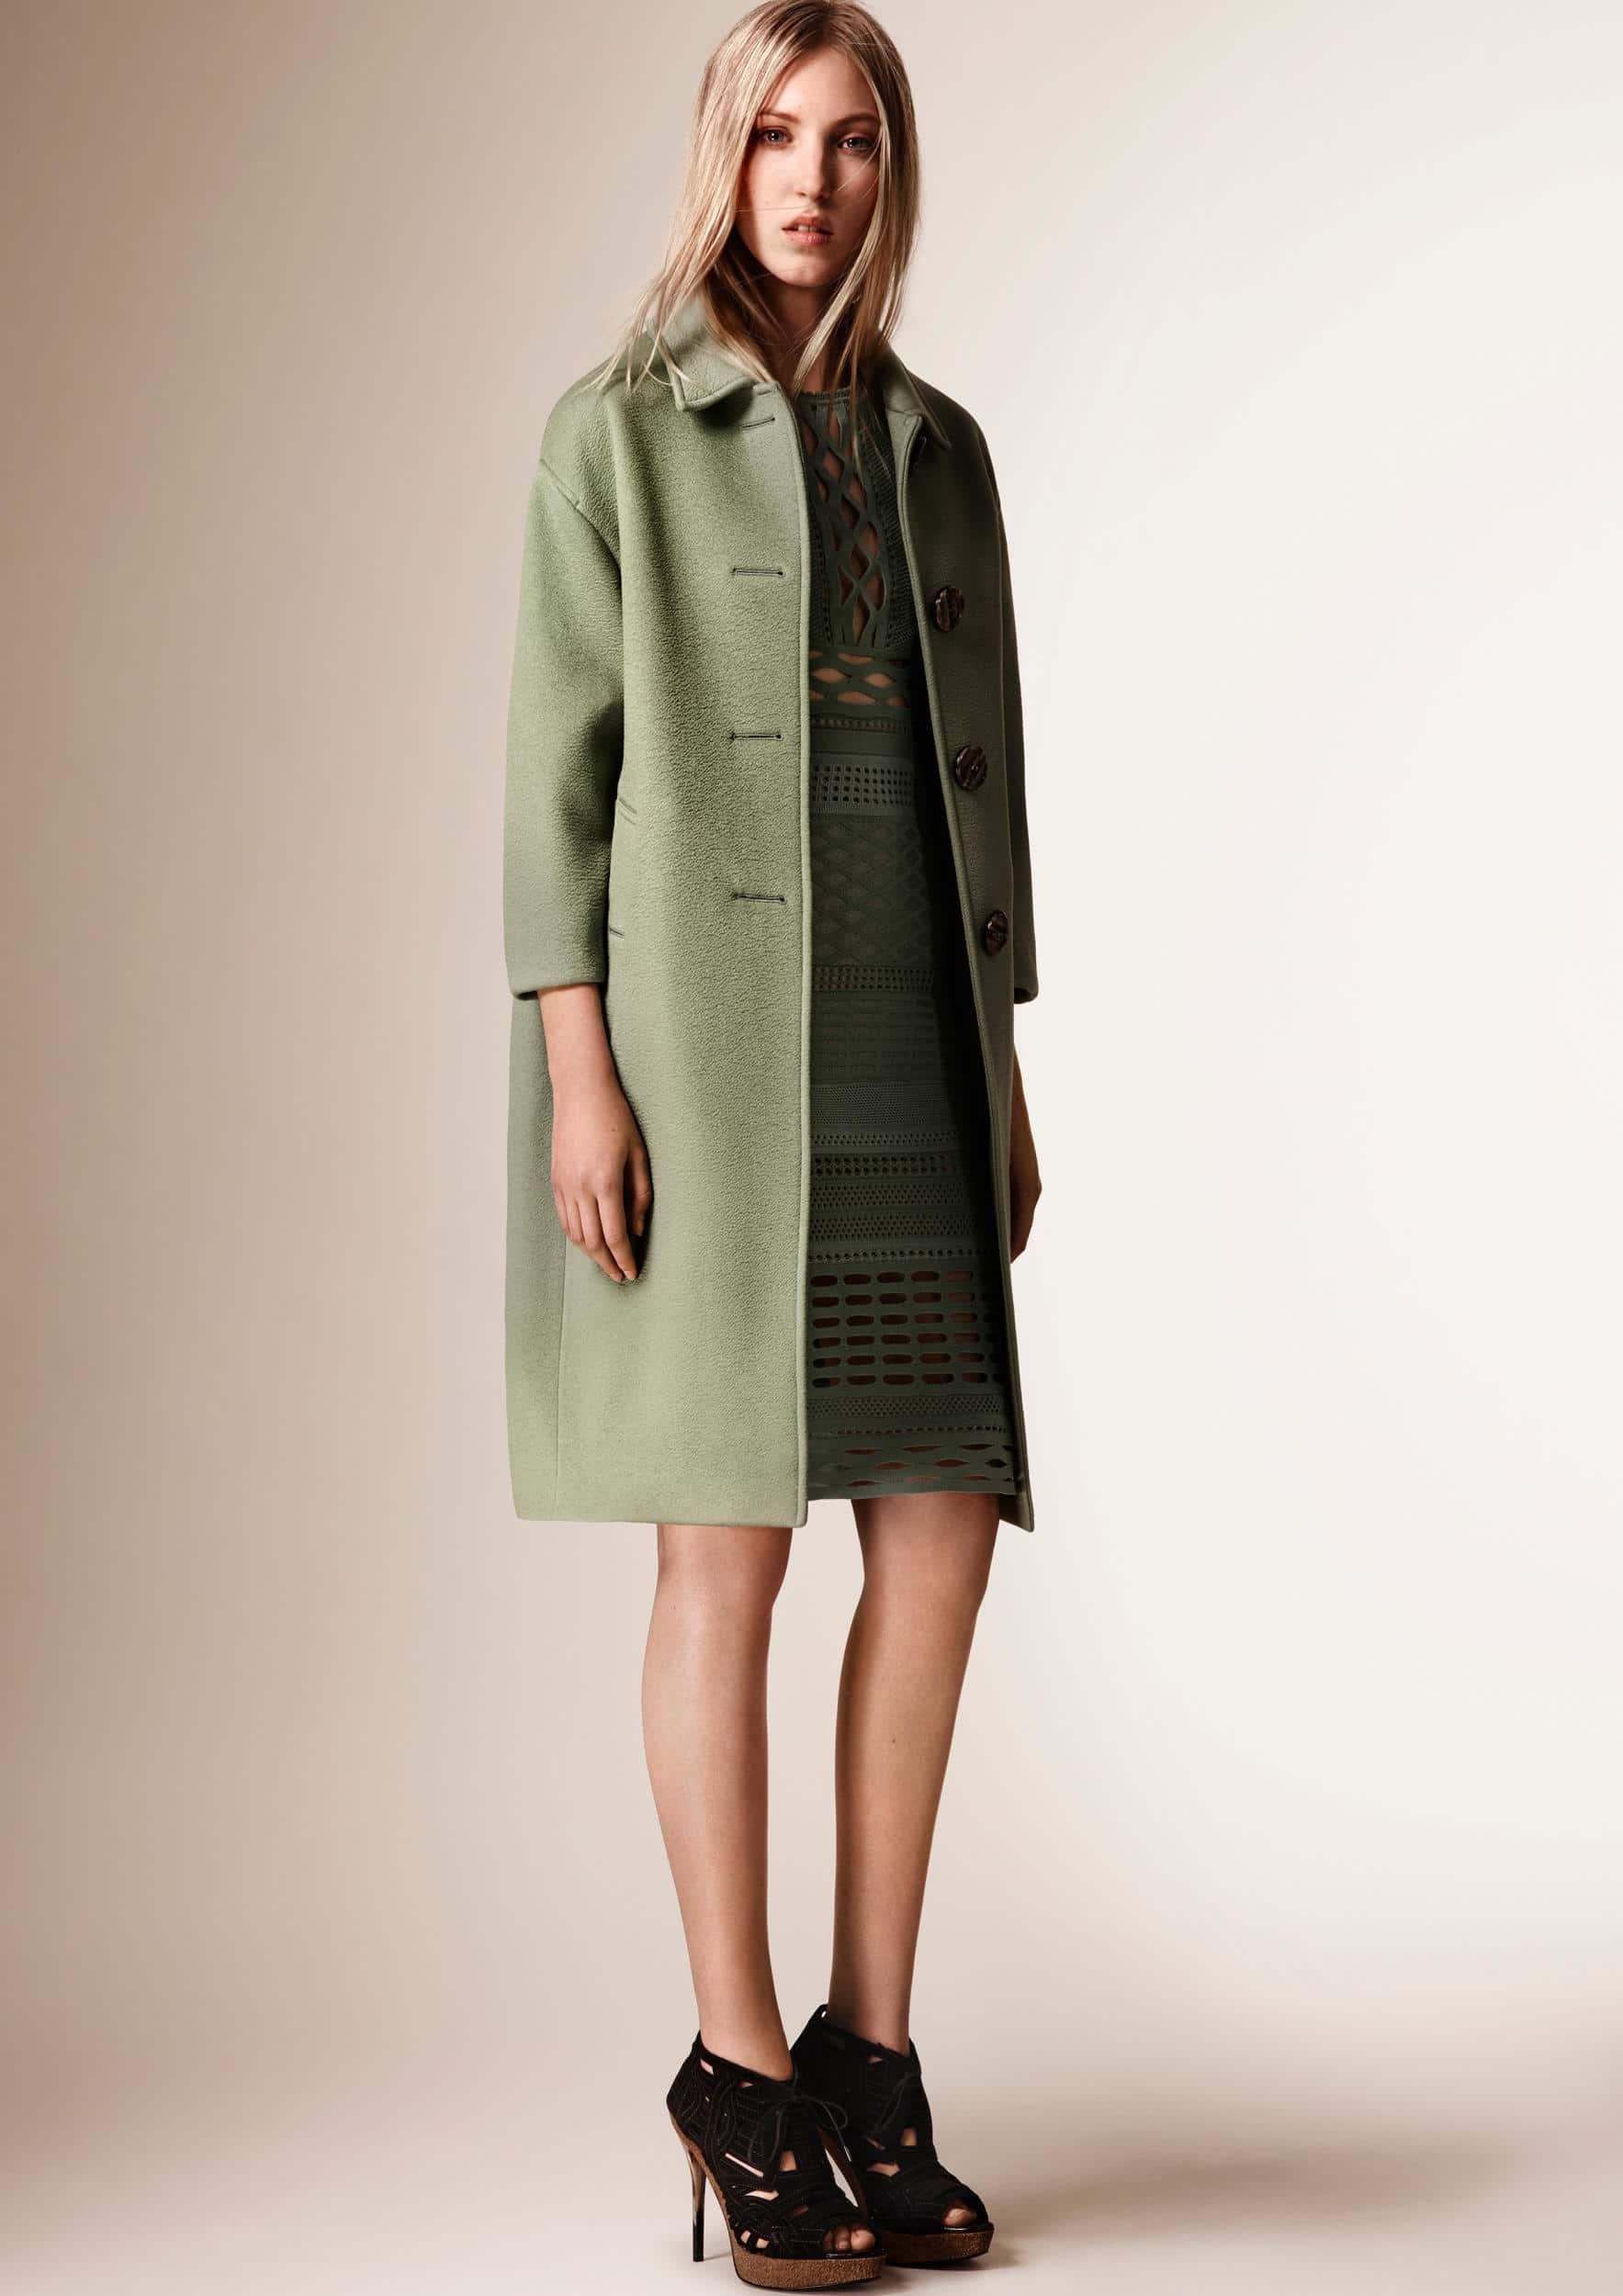 burberry-resort-collection-2016-11